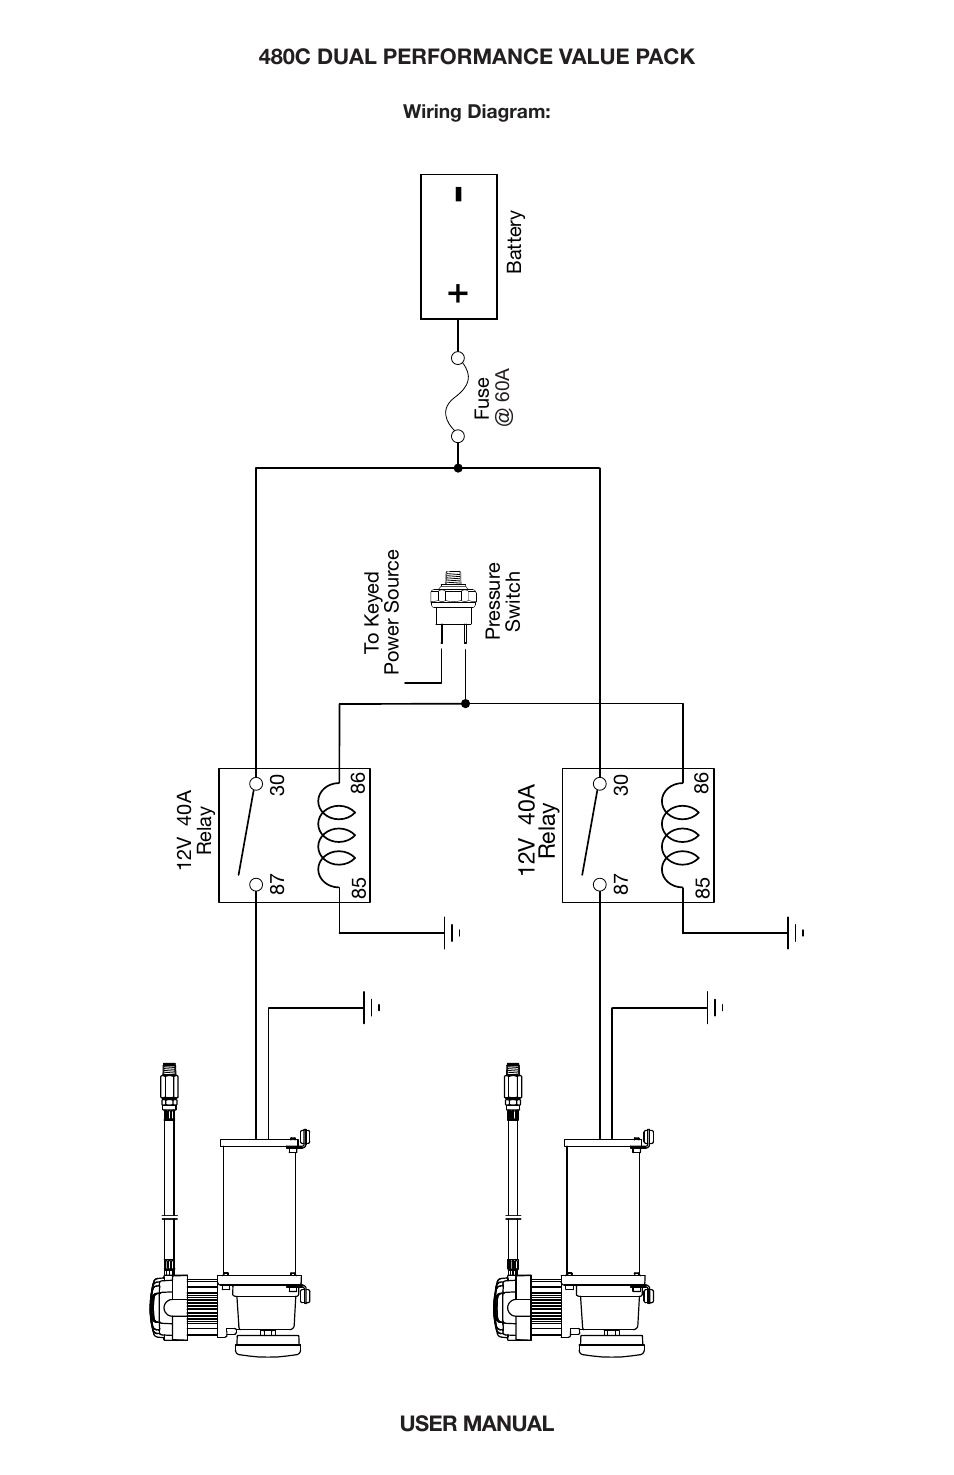 Tecumseh Compressor Wiring Diagram from lh6.googleusercontent.com